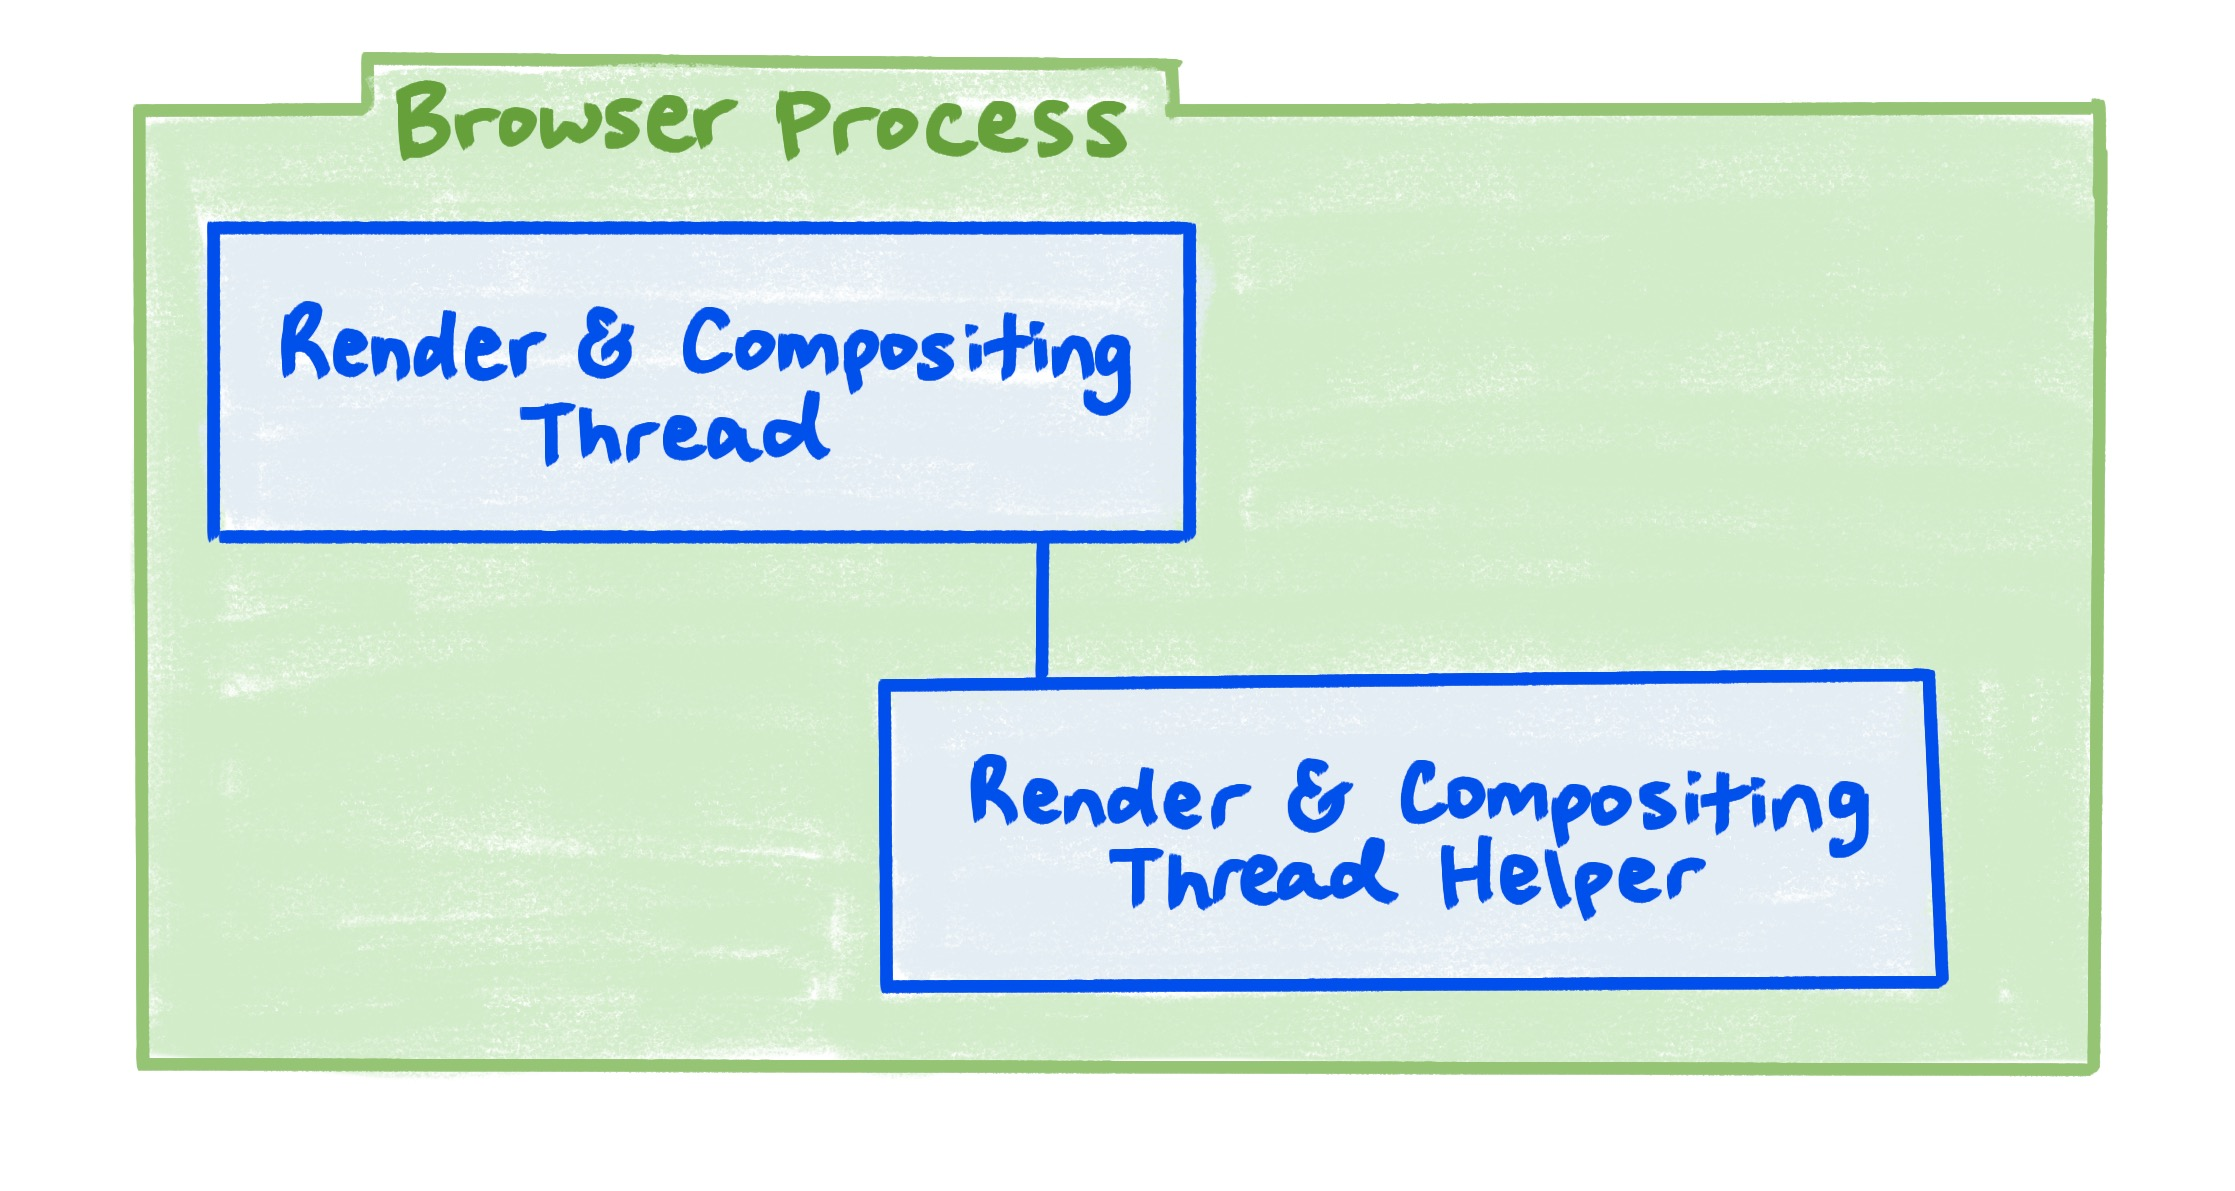 A browser process diagram showing the relationship between the Render and compositing thread, and the render and compositing thread helper.